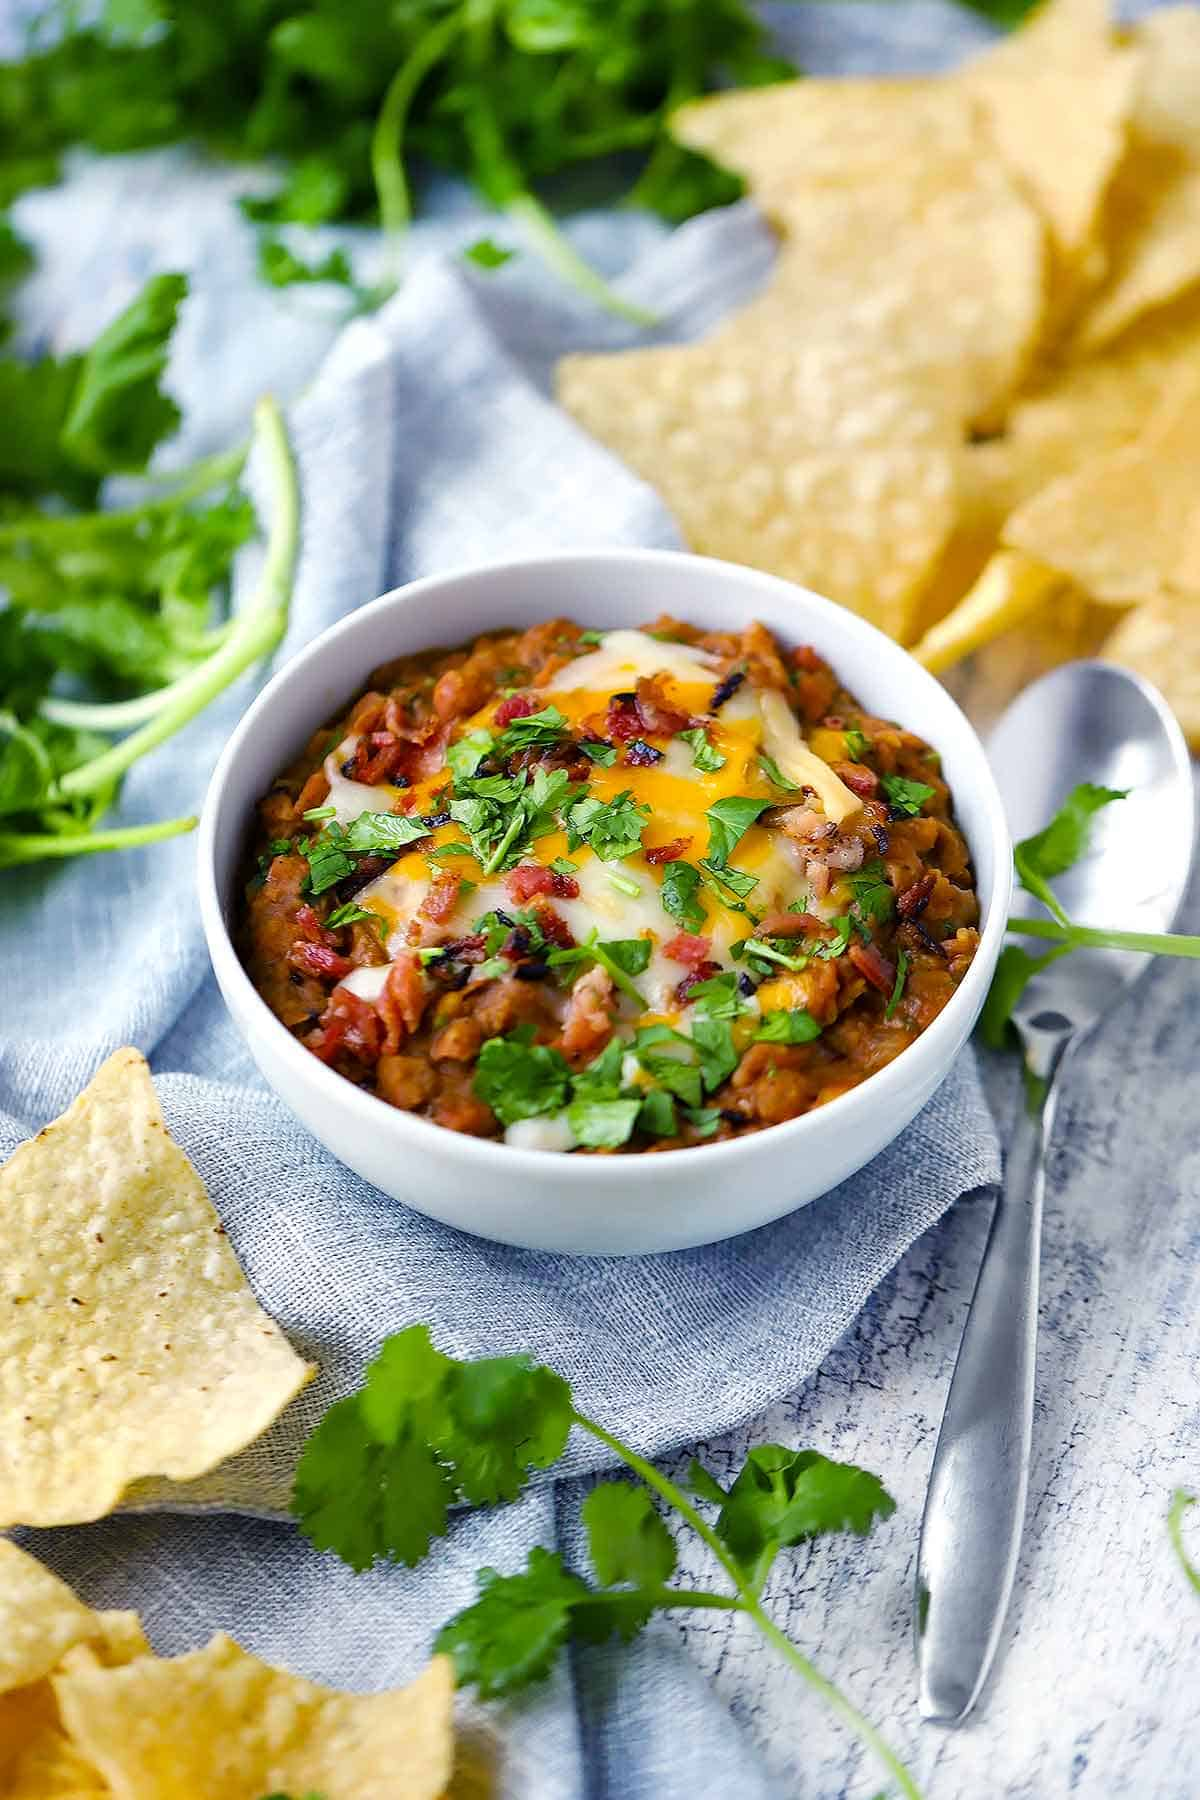 These are the Best. Refried. Beans. Ever. Fully endorsed by my native Texan husband. Just a few ingredients and about 10 minutes for the most flavorful and fresh refried beans you have ever had!